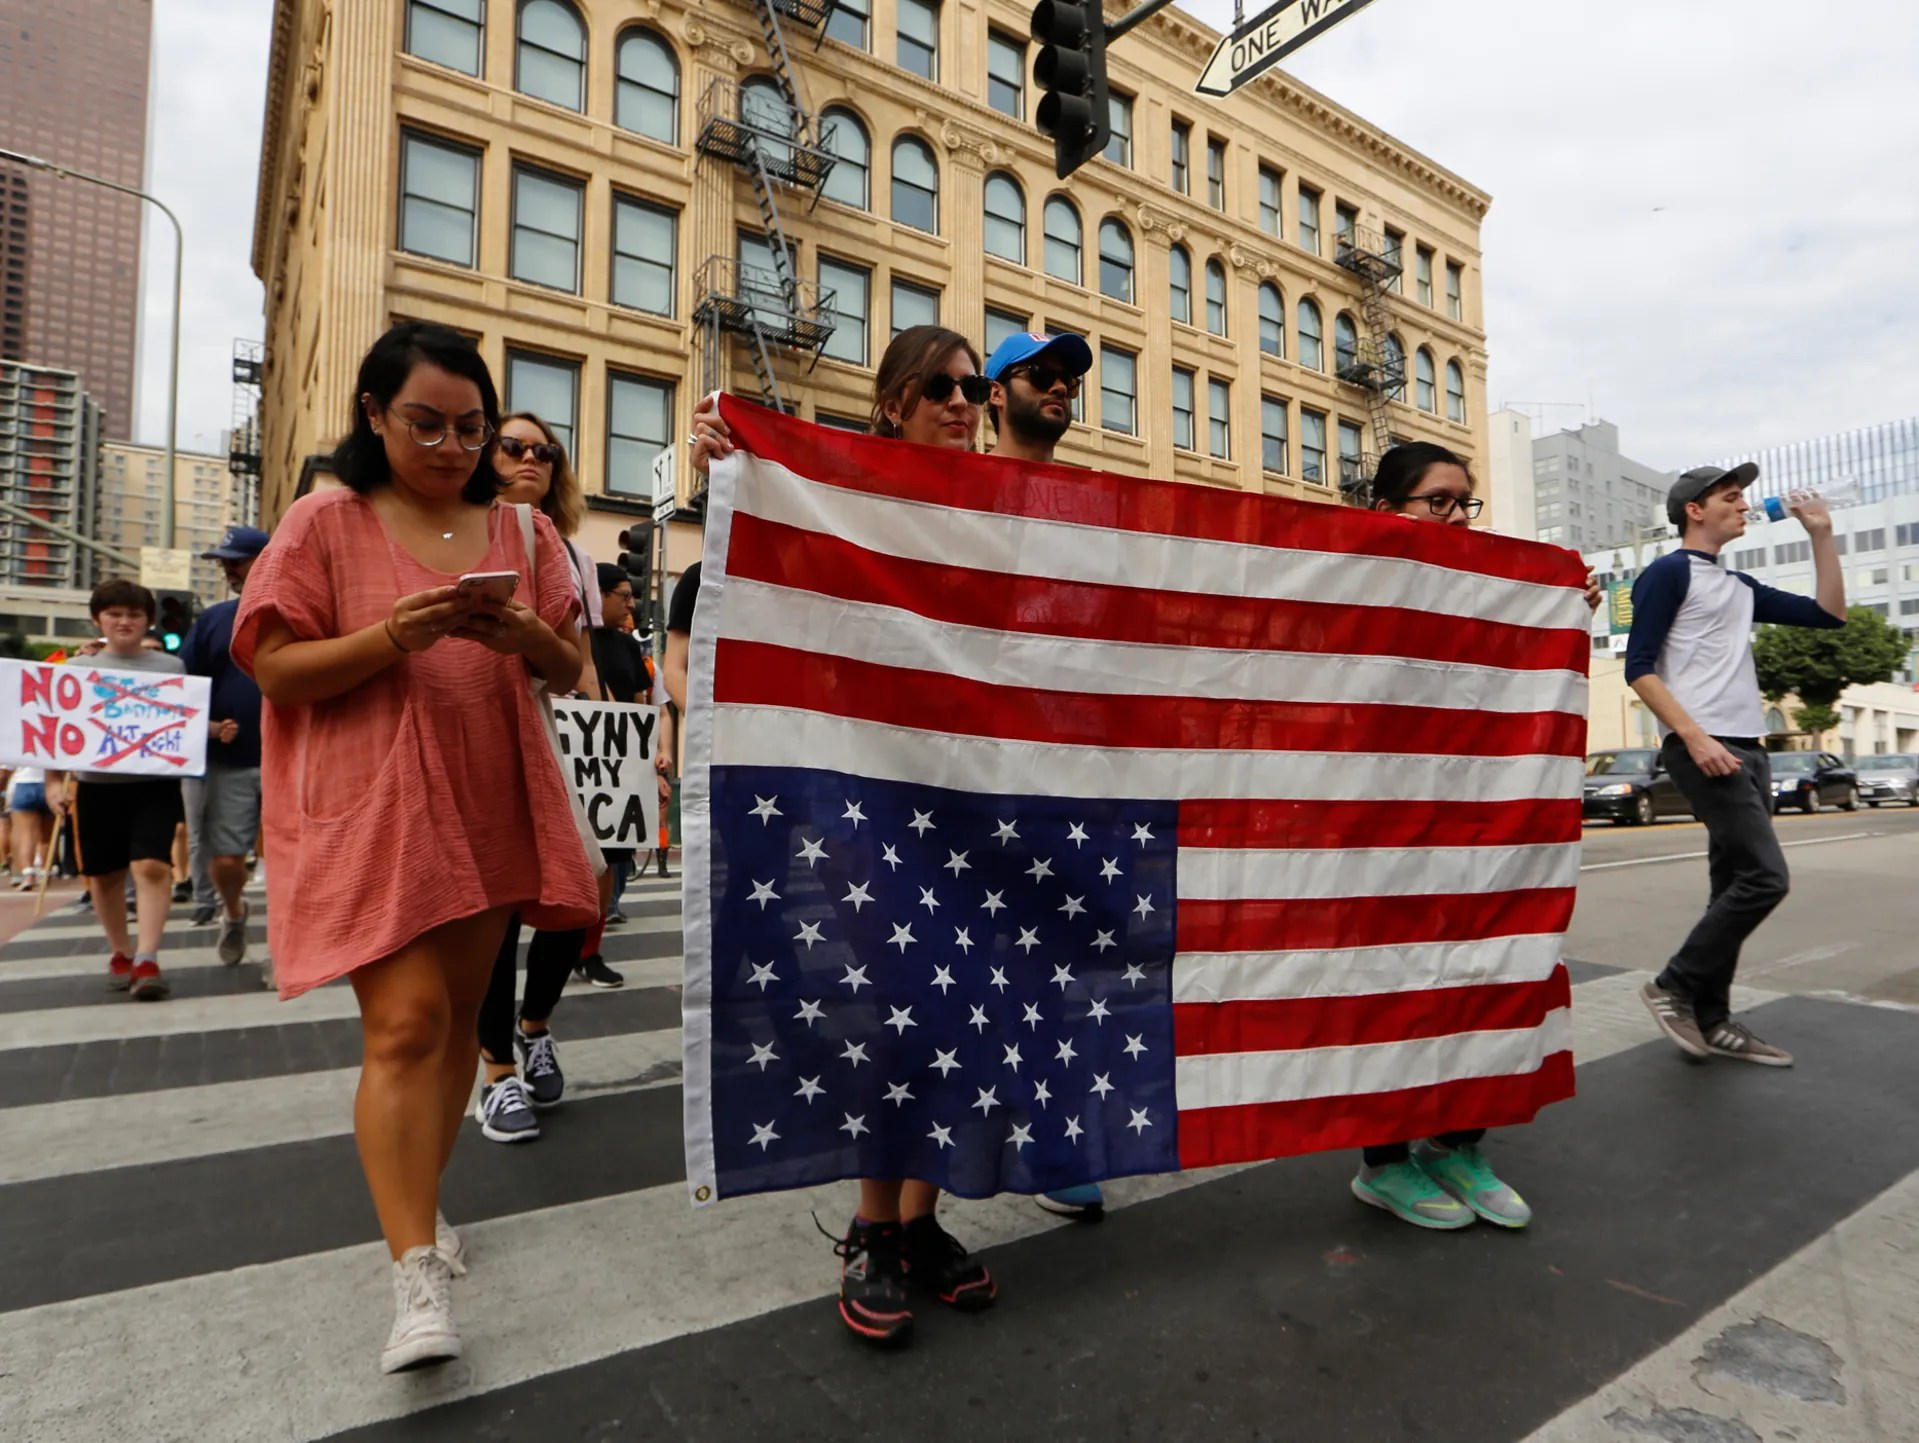 Anti-Trump demonstrators hold a U.S. flag upside-down